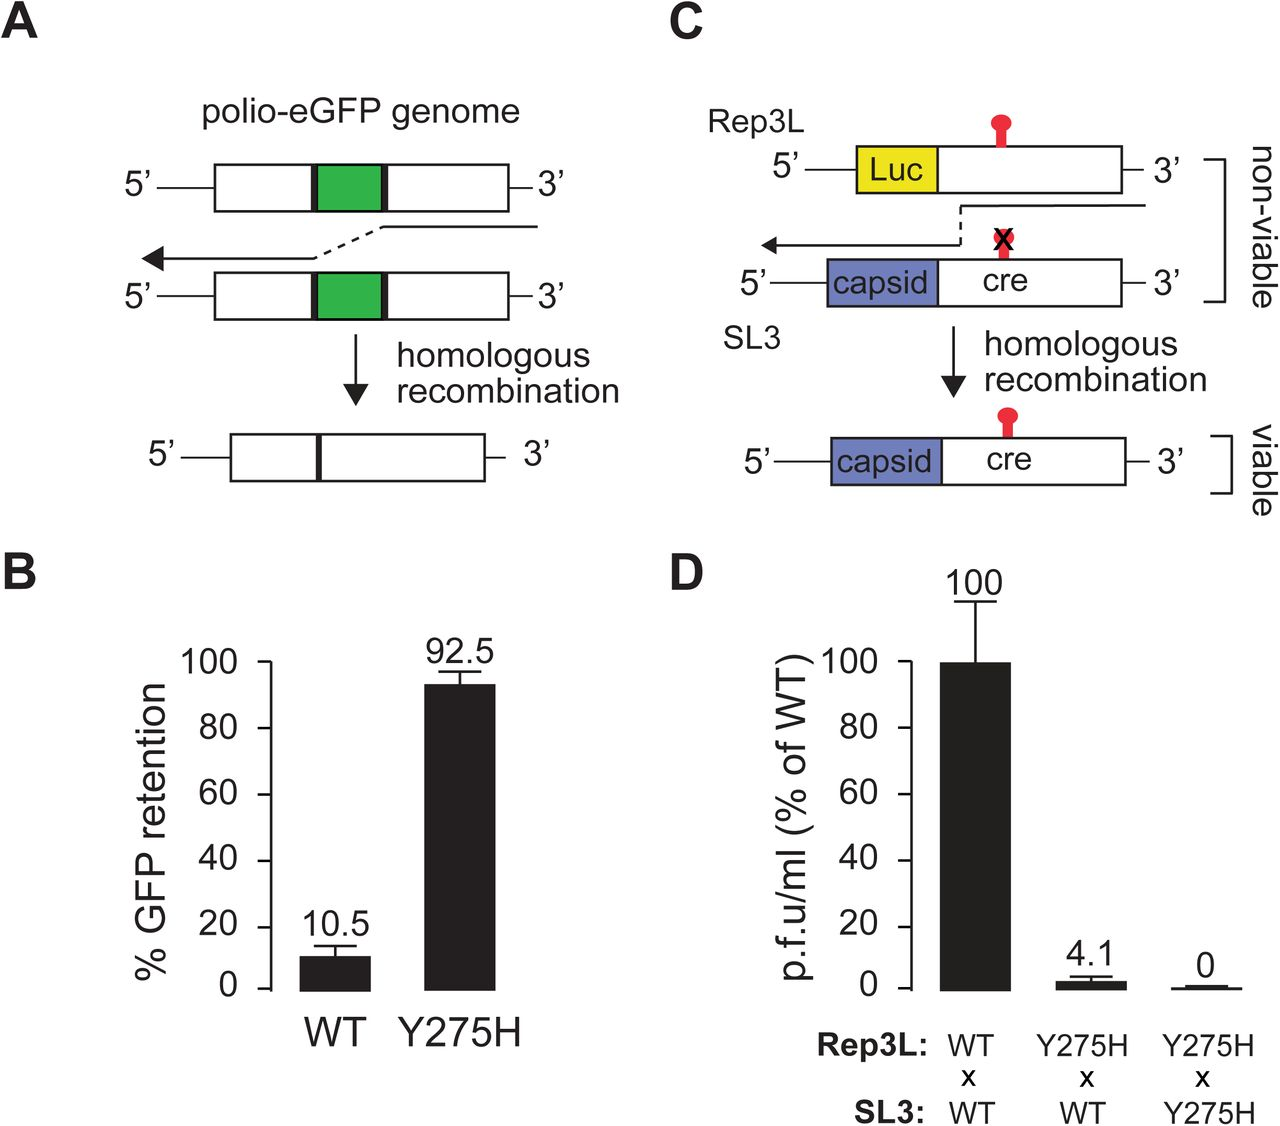 Genetic recombination of poliovirus facilitates subversion of host